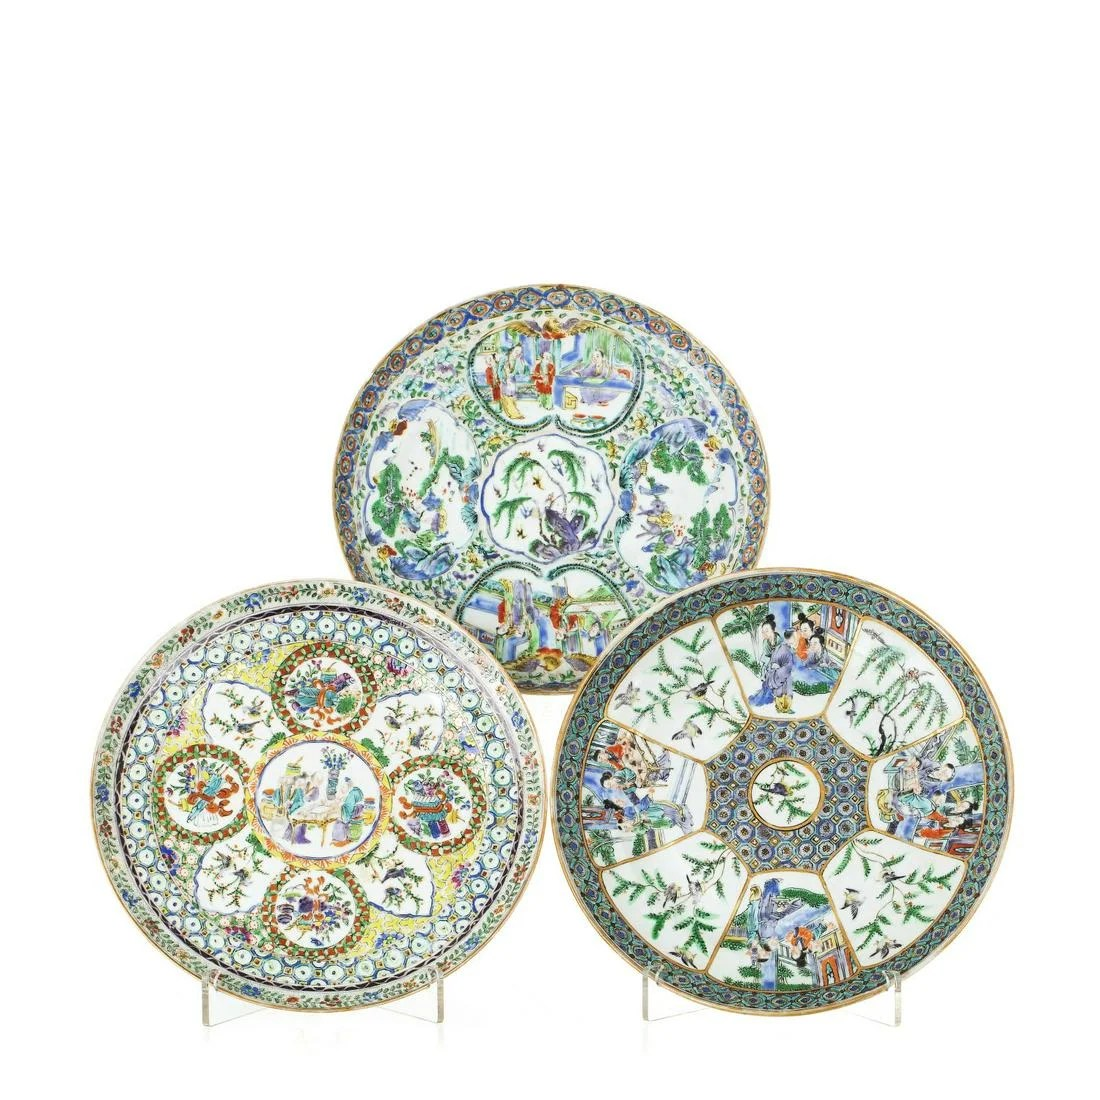 Three 'Mandarin' dishes in Chinese porcelain